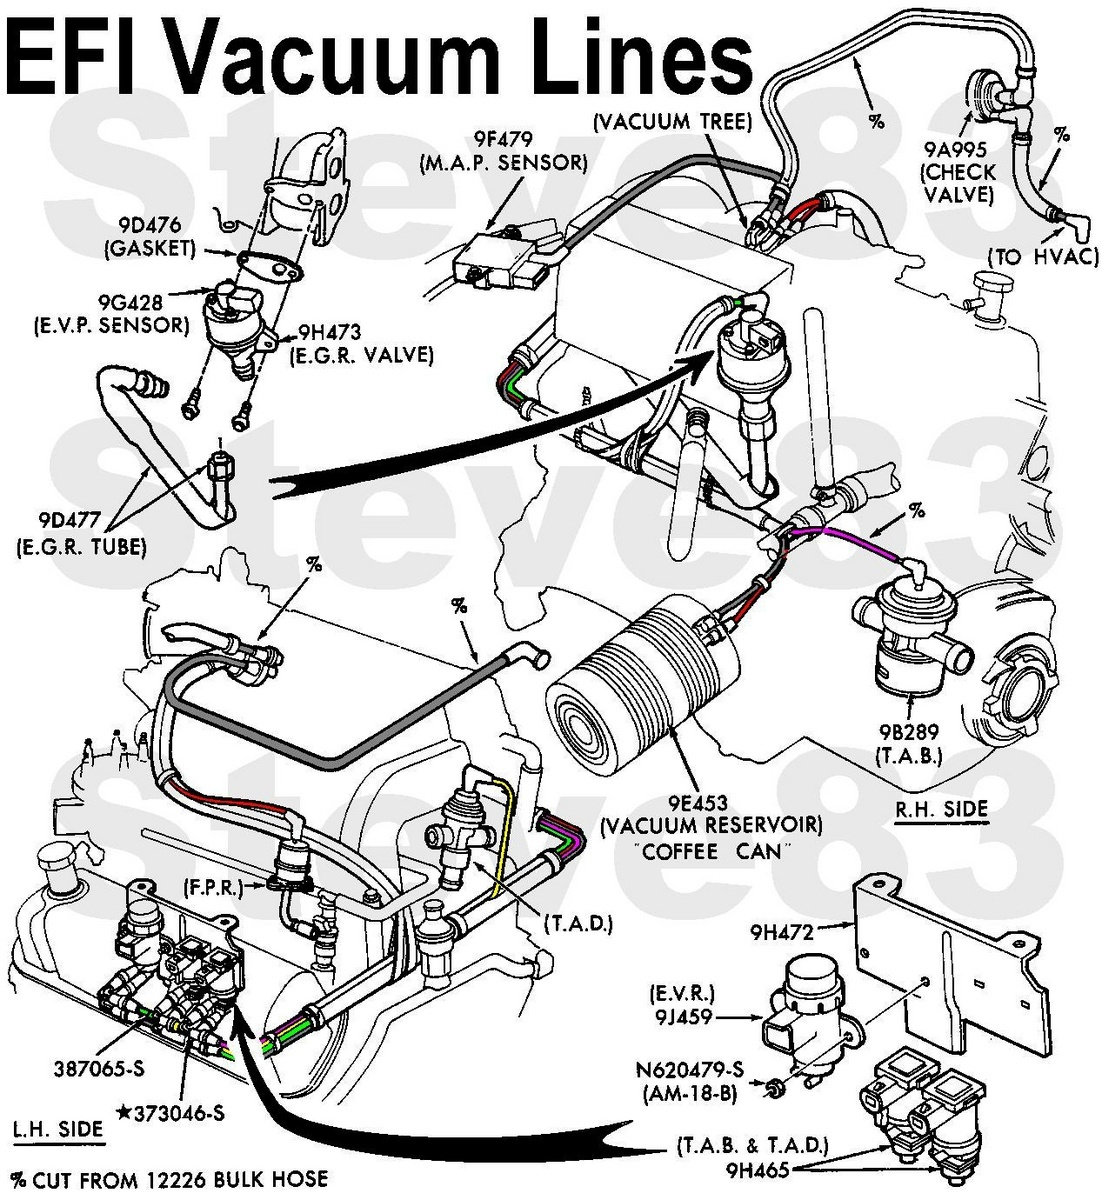 2003 F150 4 W Suspension Schematic furthermore Kia Soul Suspension Diagram together with 2005 Chevy Avalanche Parts Diagram moreover Discussion T20569 ds546606 additionally EX. on 2012 kia sorento transfer case